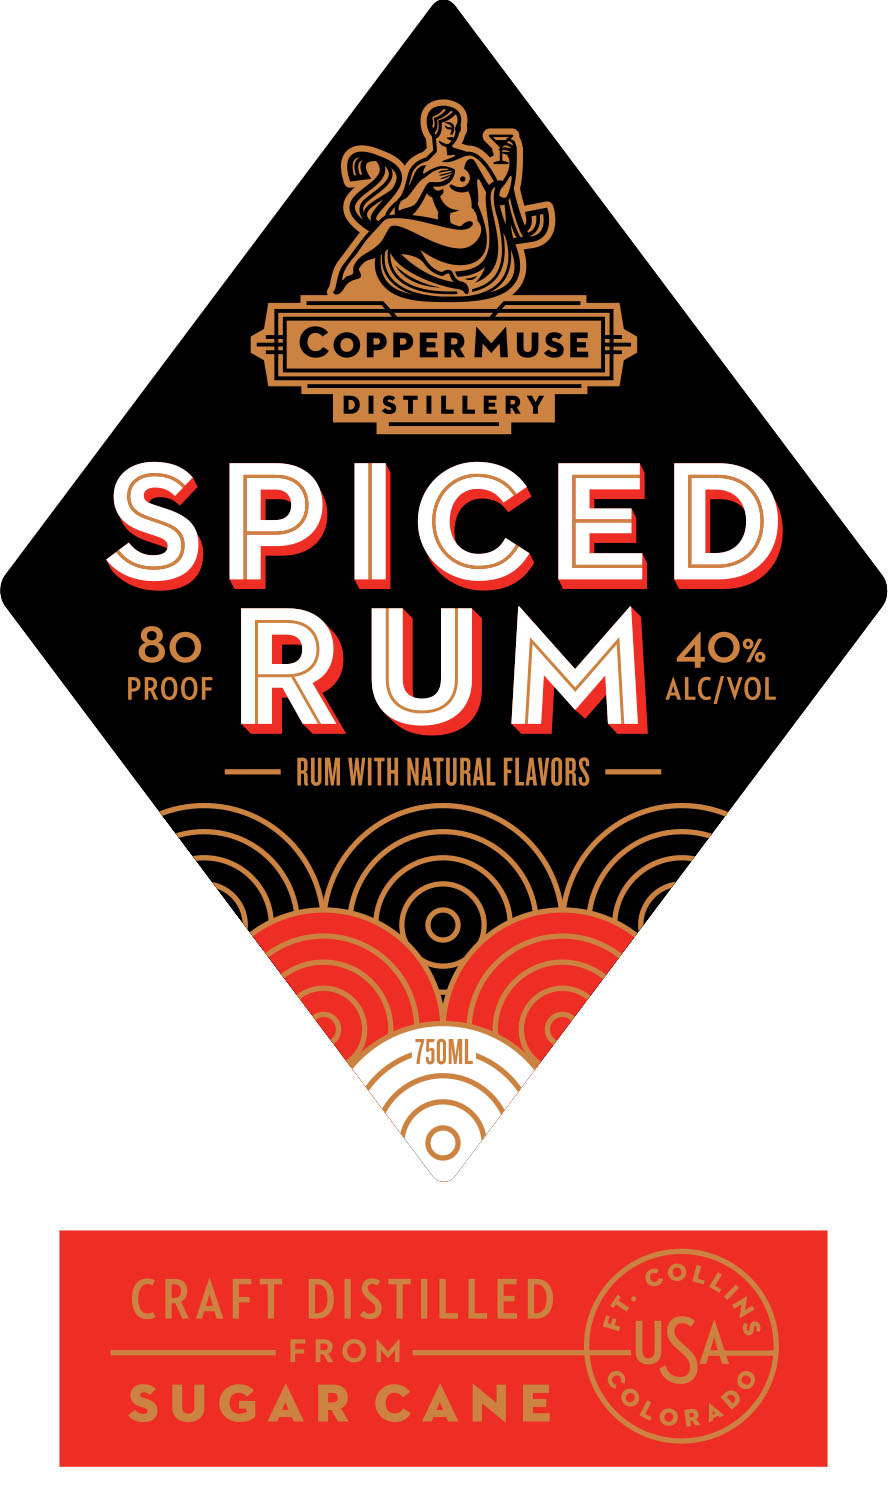 Spiced Rum - Our award-winning Gold Rum is infused with nutmeg, cinnamon, grains of paradise, cloves, vanilla and blood orange zest.